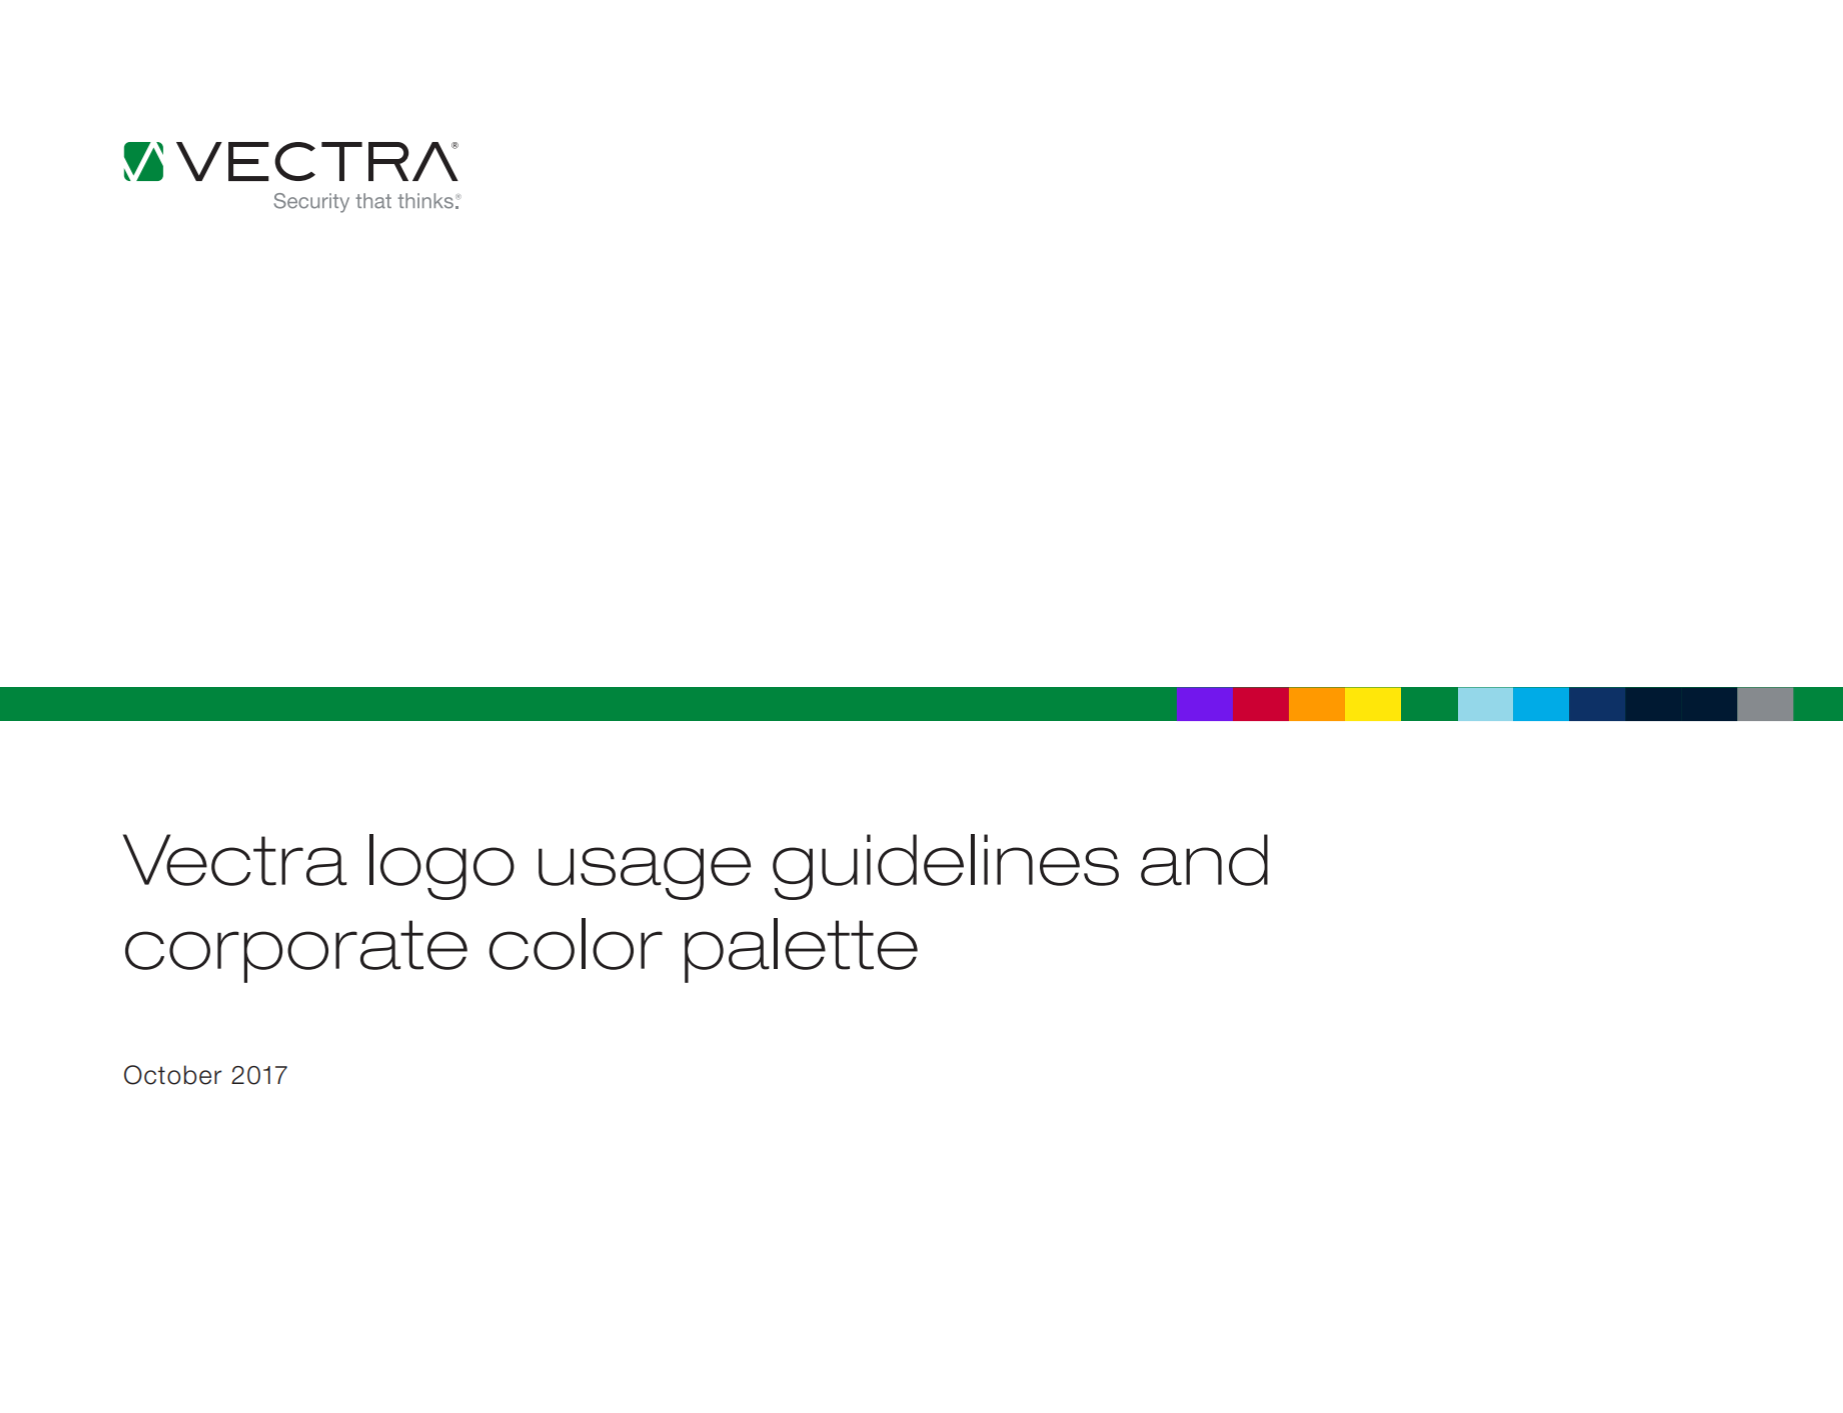 Vectra brand guidelines